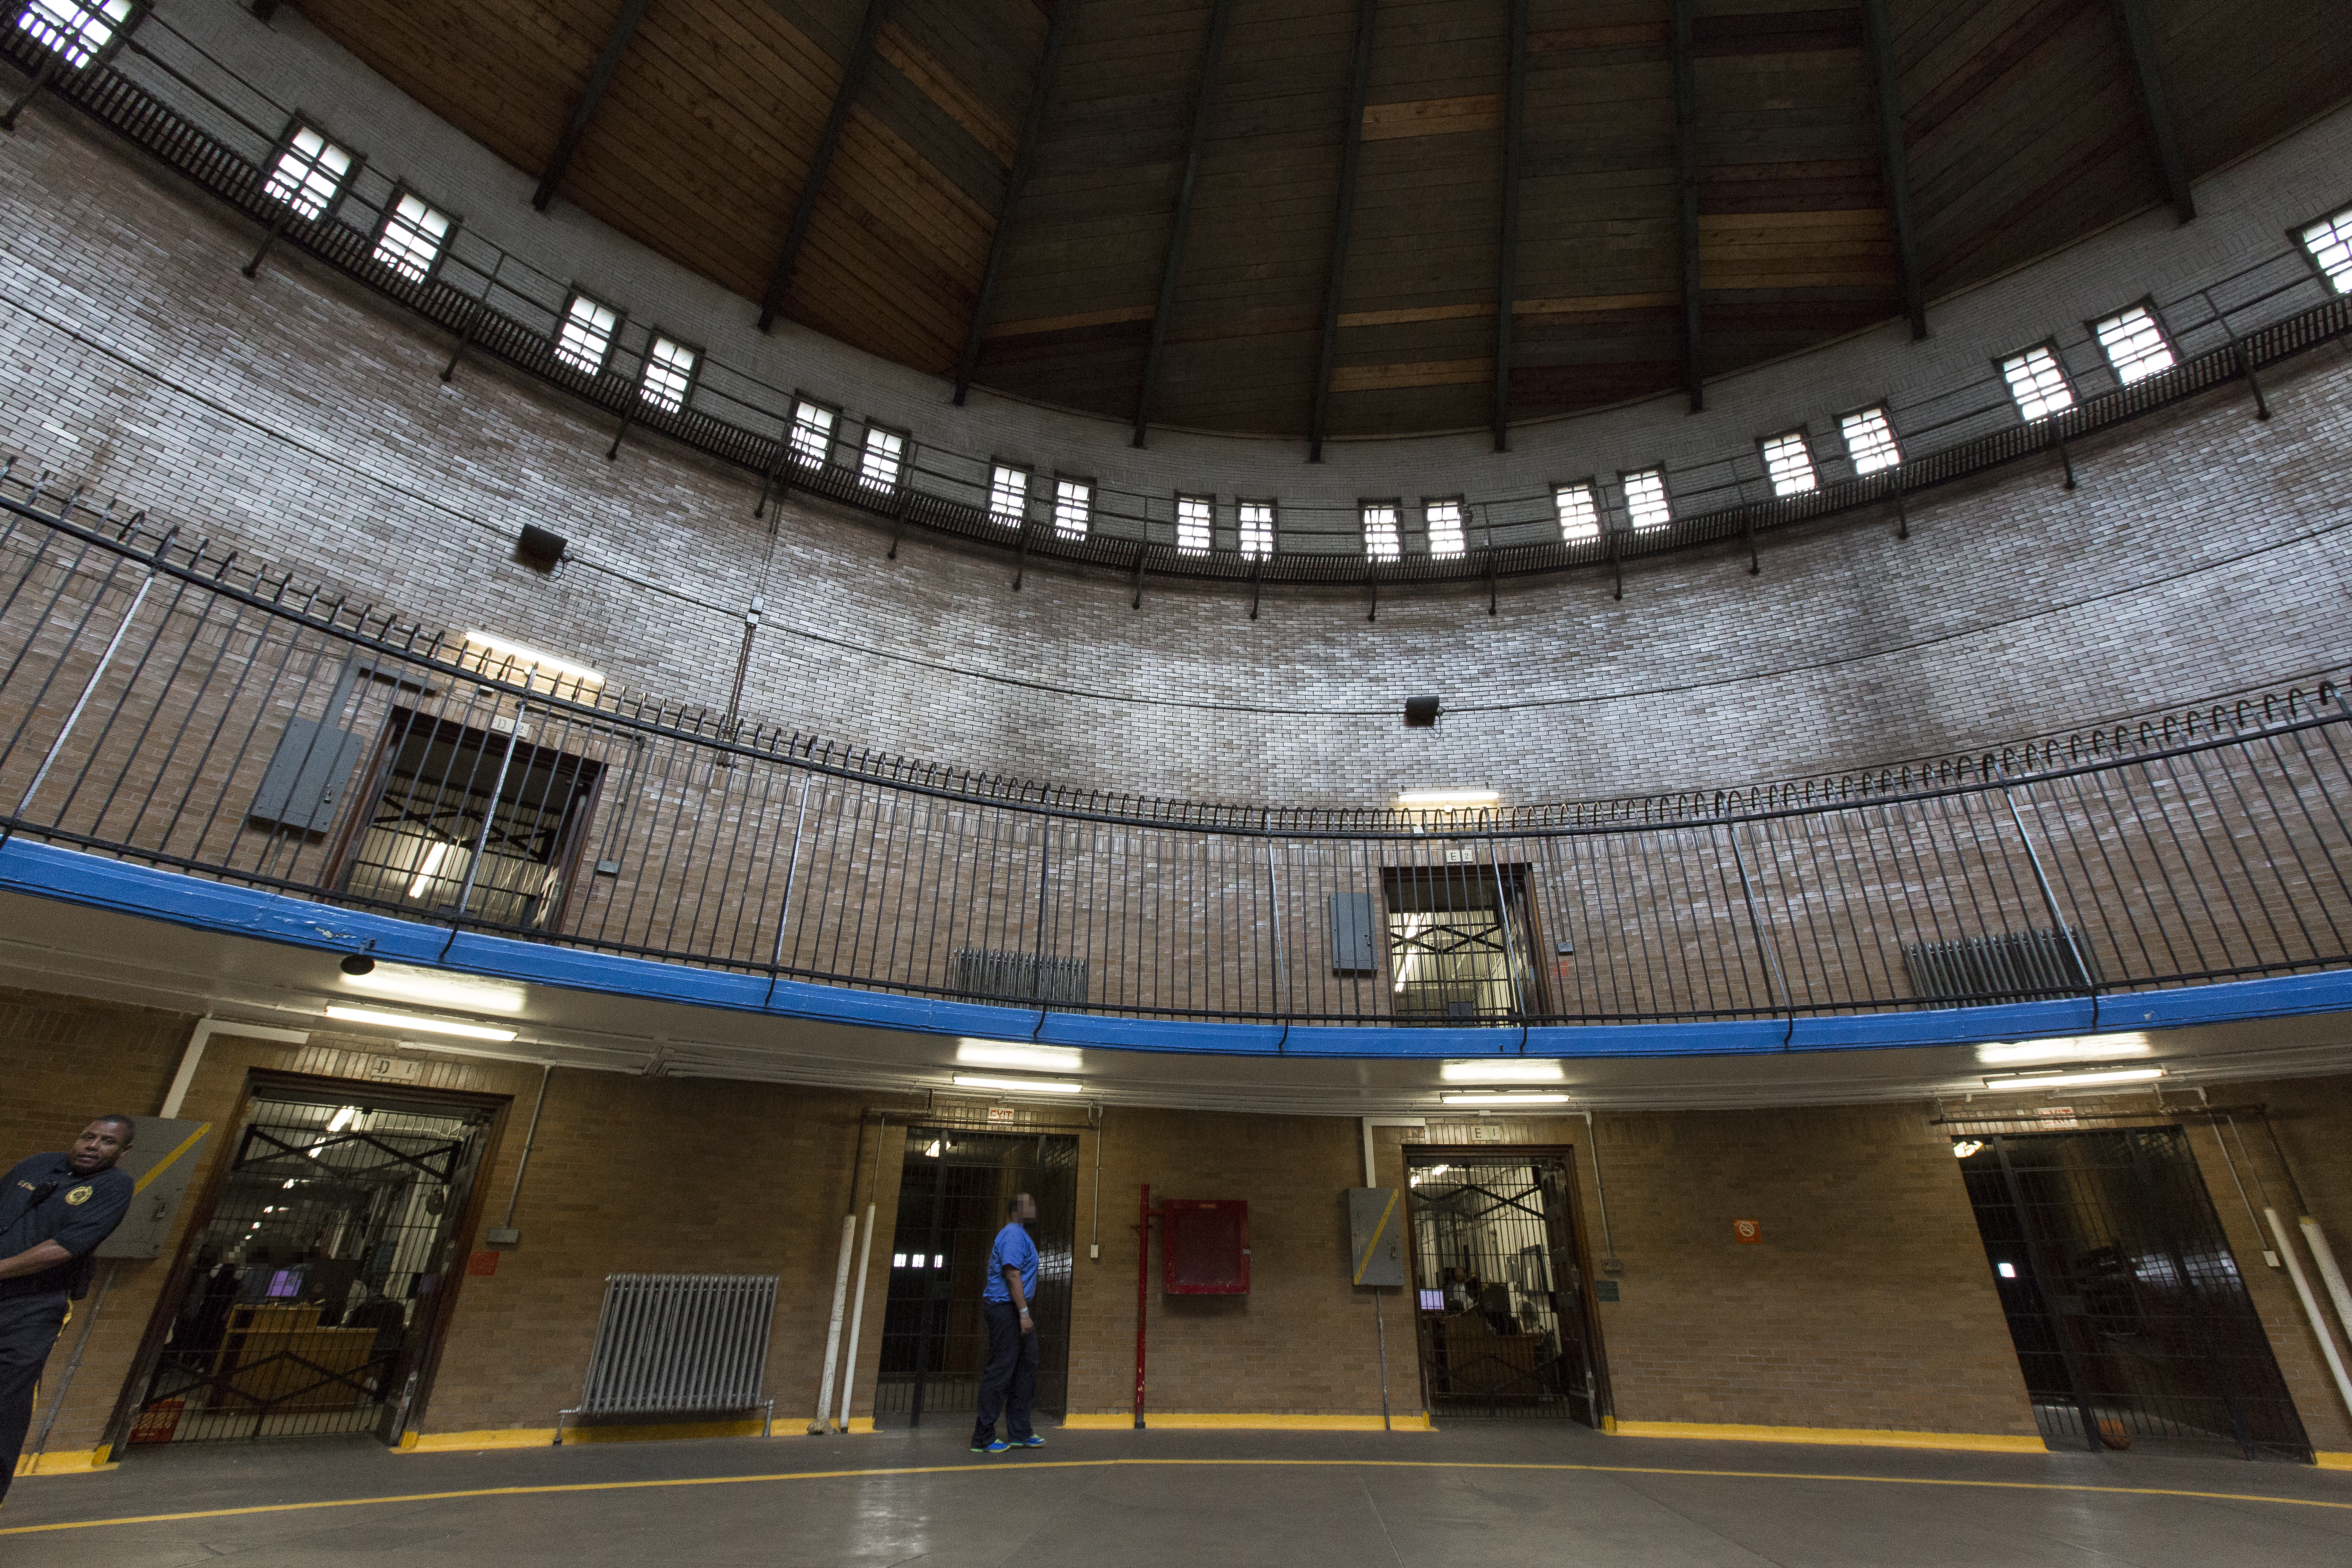 One of two main rotundas in the House of Correction. Each opening leads back to a cell block.